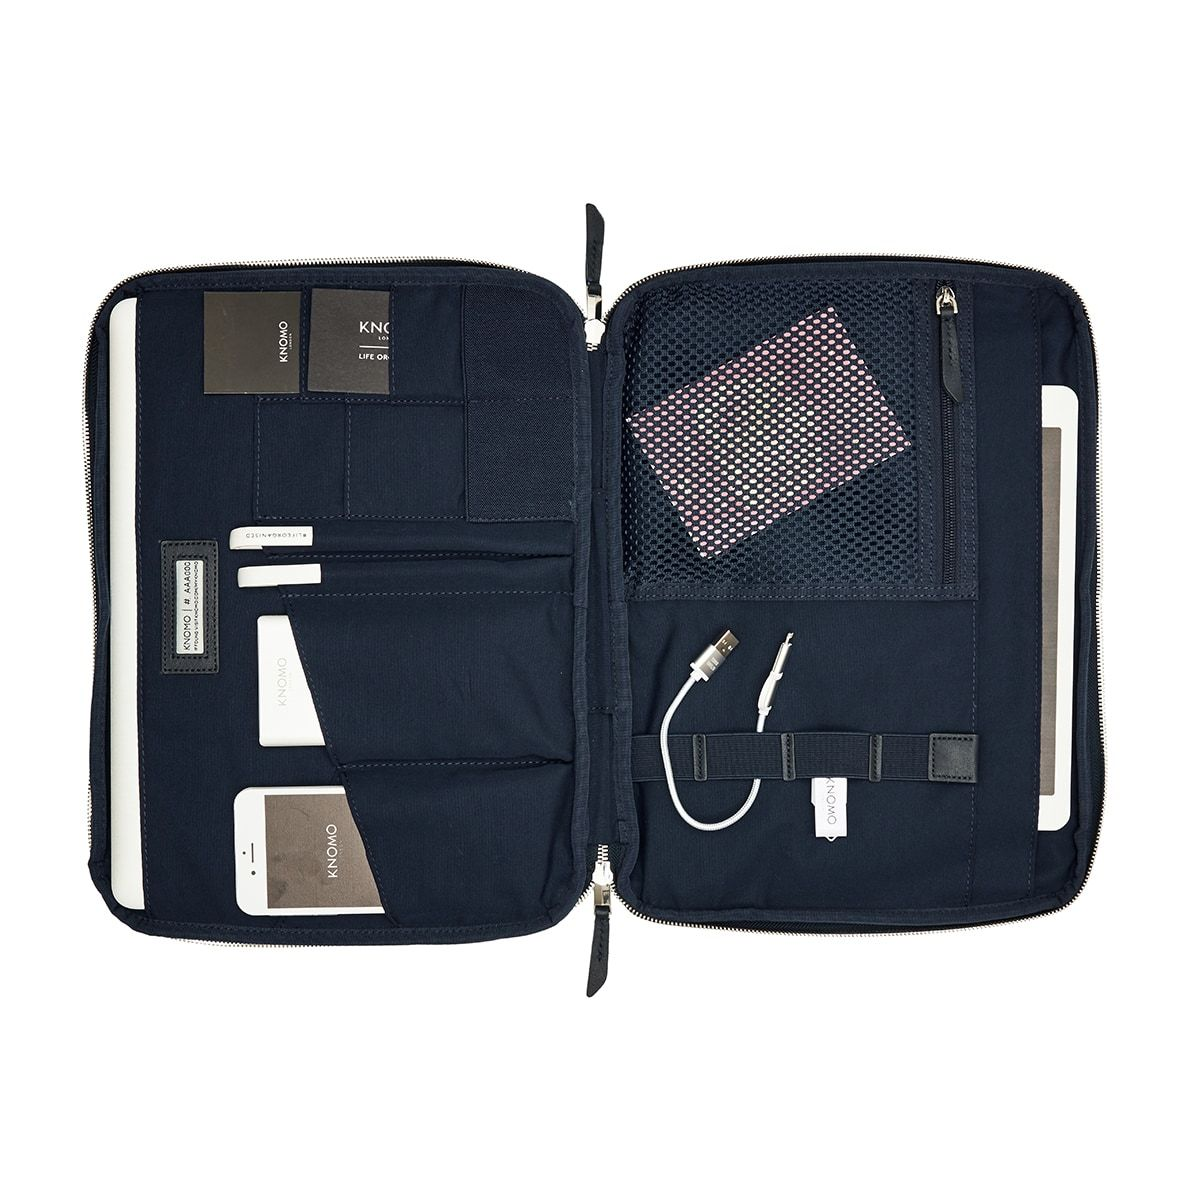 "Knomad X-Body Organiser Tech Organiser for Work - 13"" -  13"" 